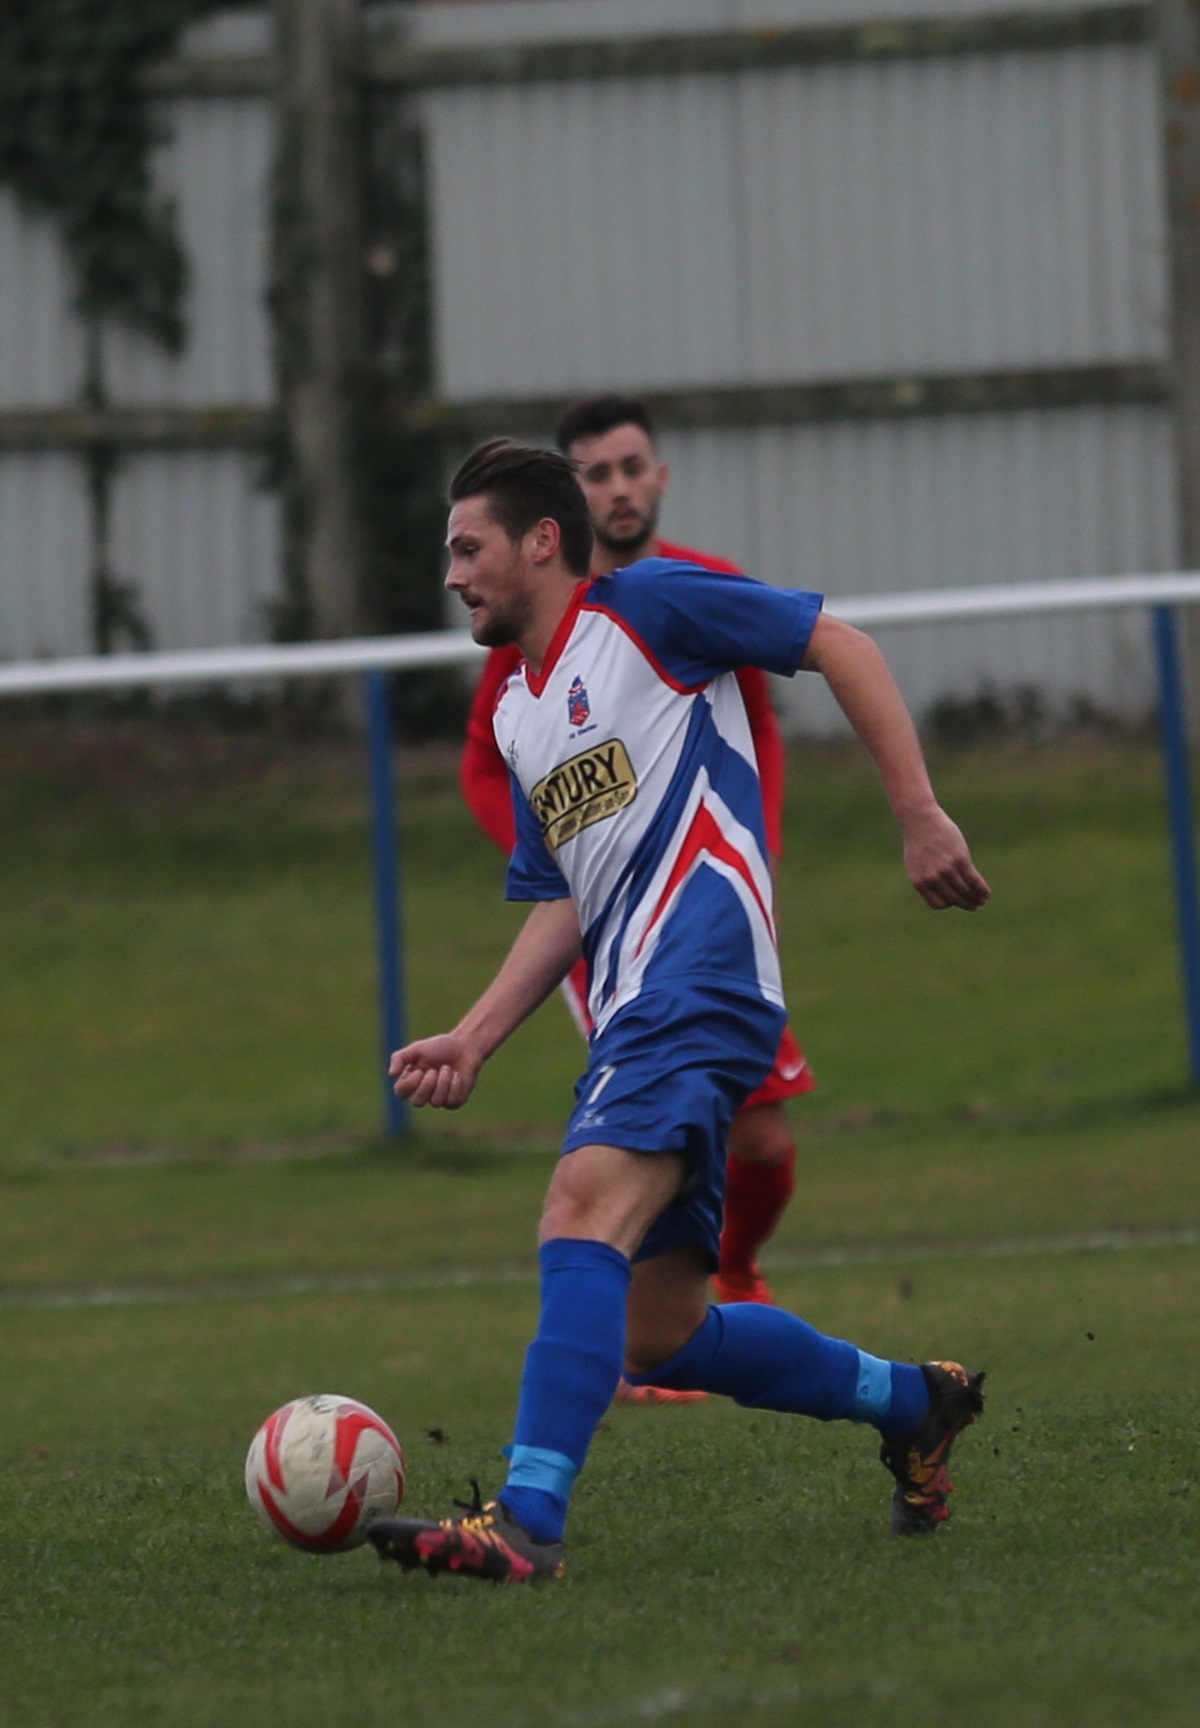 Jake Plane scored twice for Clacton against Wivenhoe